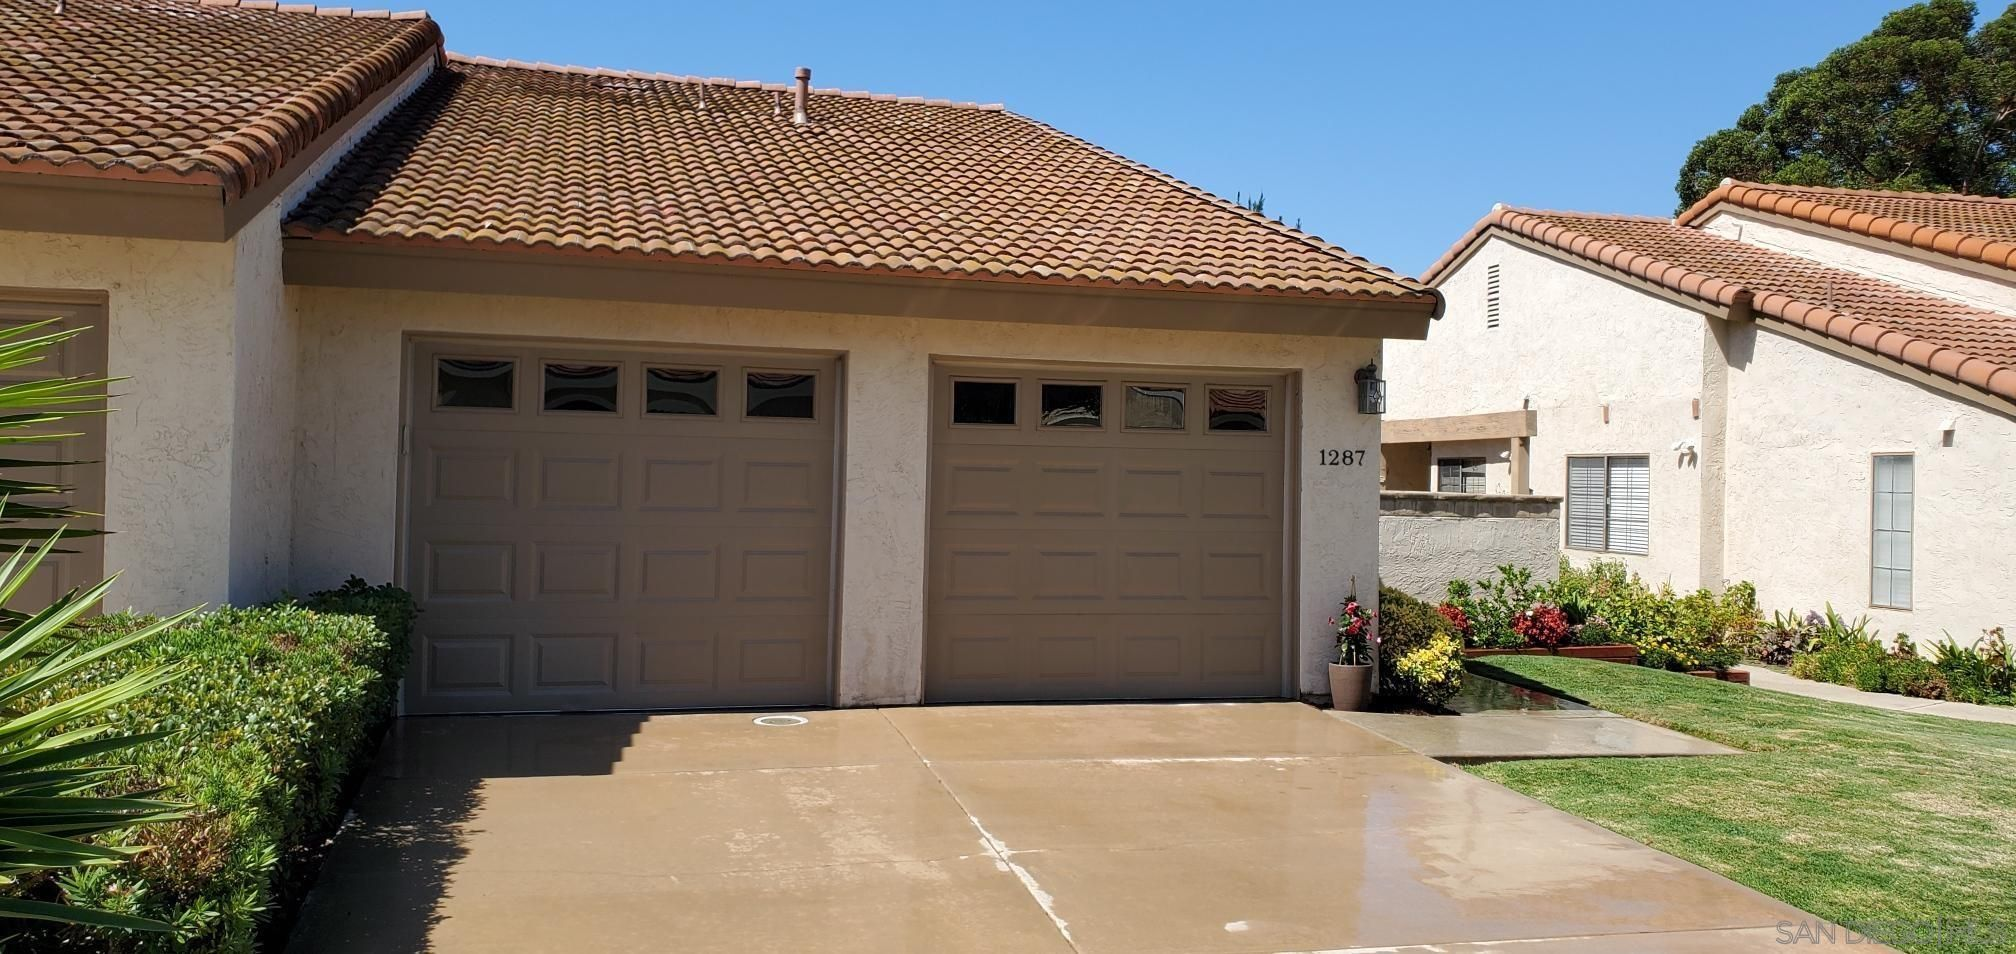 Main Photo: LAKE SAN MARCOS Twin-home for sale : 2 bedrooms : 1287 Granada Way in San Marcos